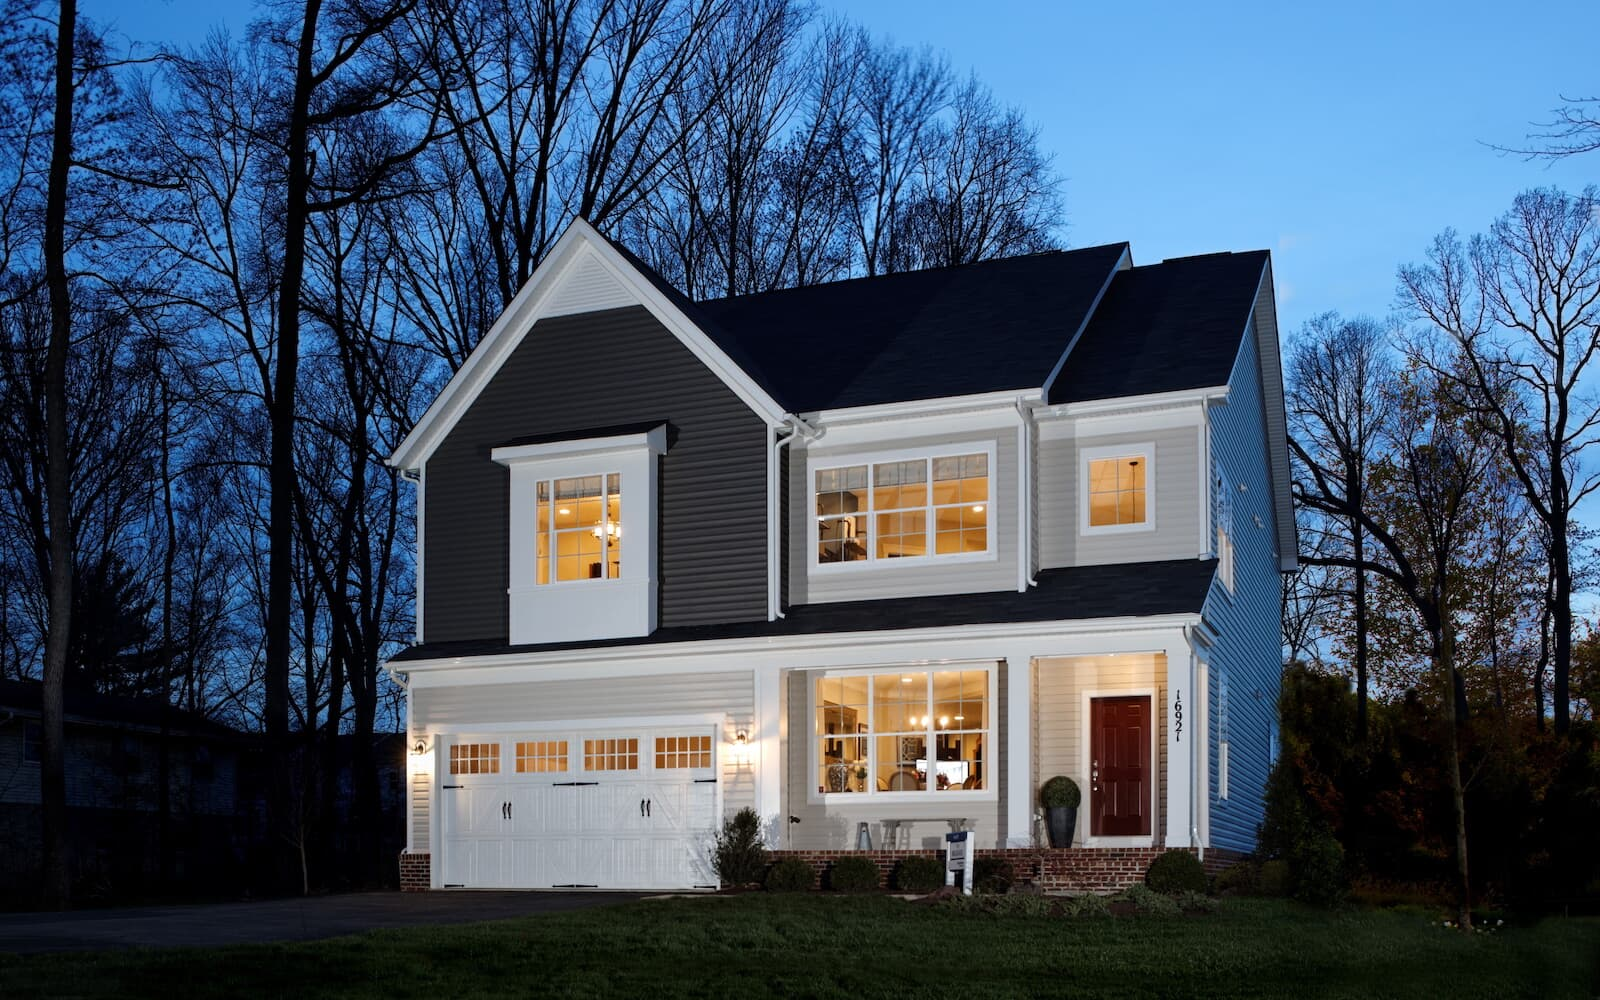 Beckner-exterior-at-night-single-family-home-bristow-va-avendale-brookfield-residential